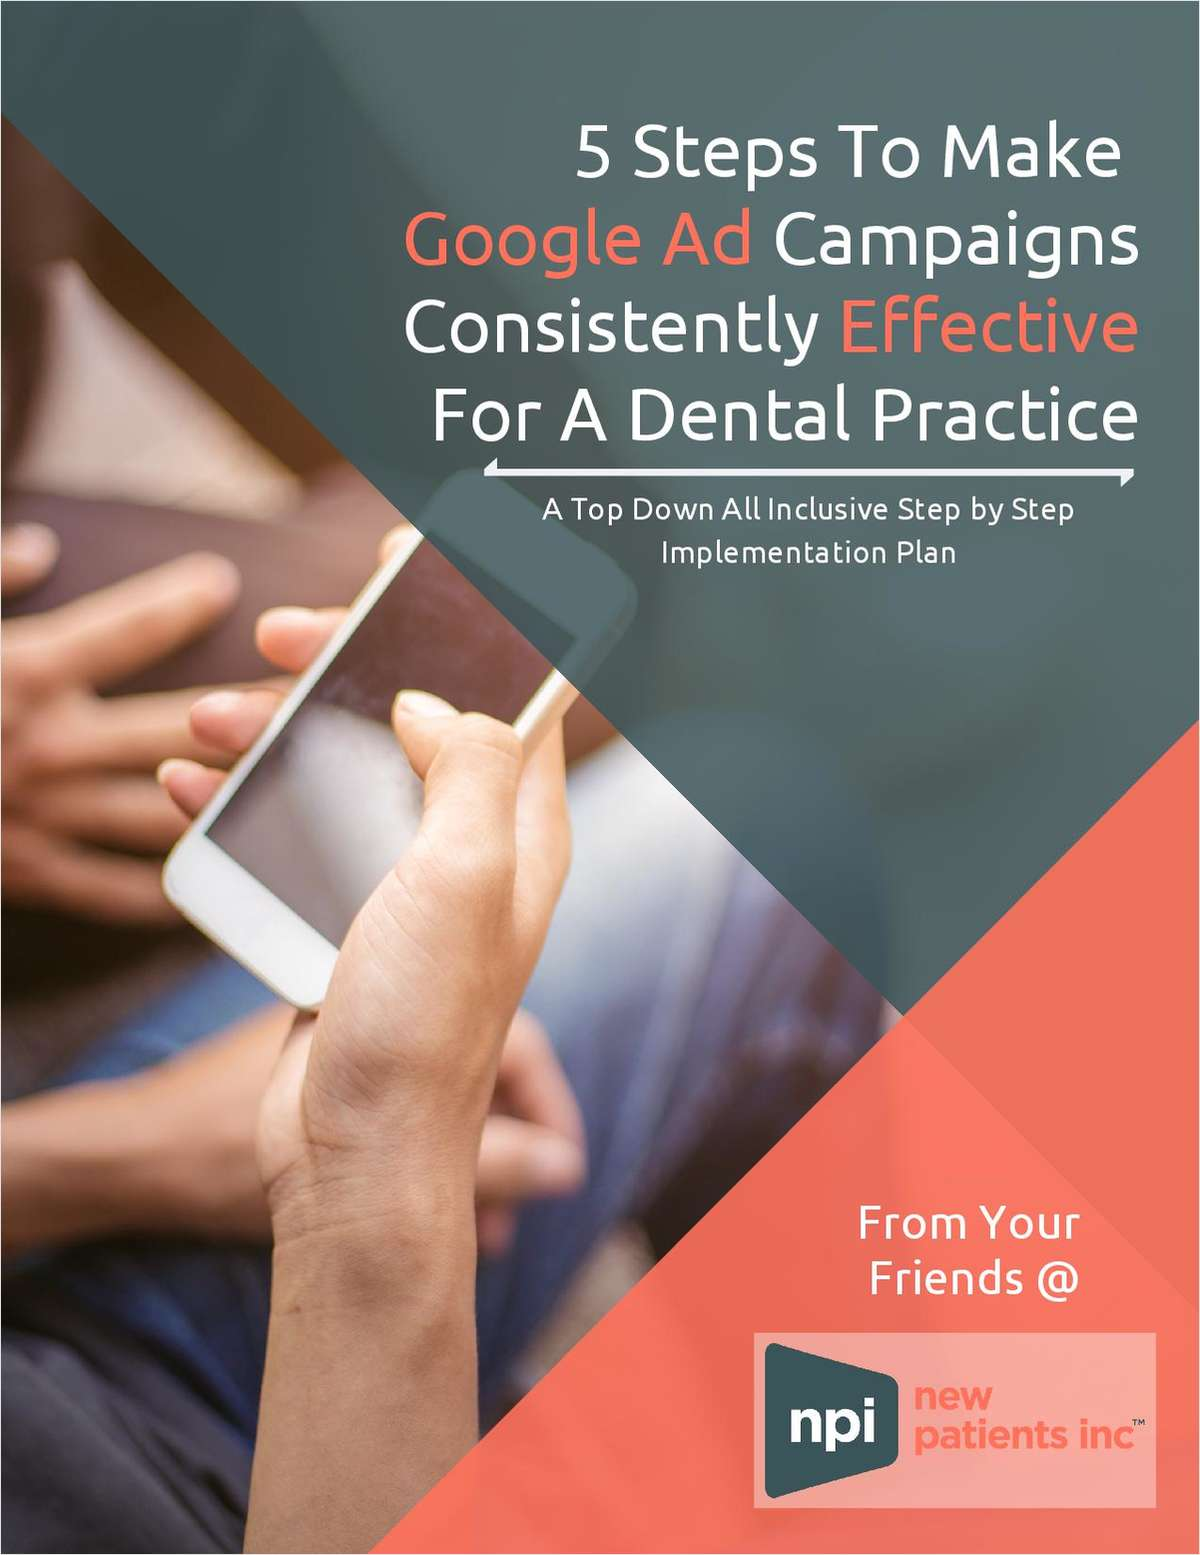 5 Steps To Make Google AdCampaigns Consistently Effective For A Dental Practice